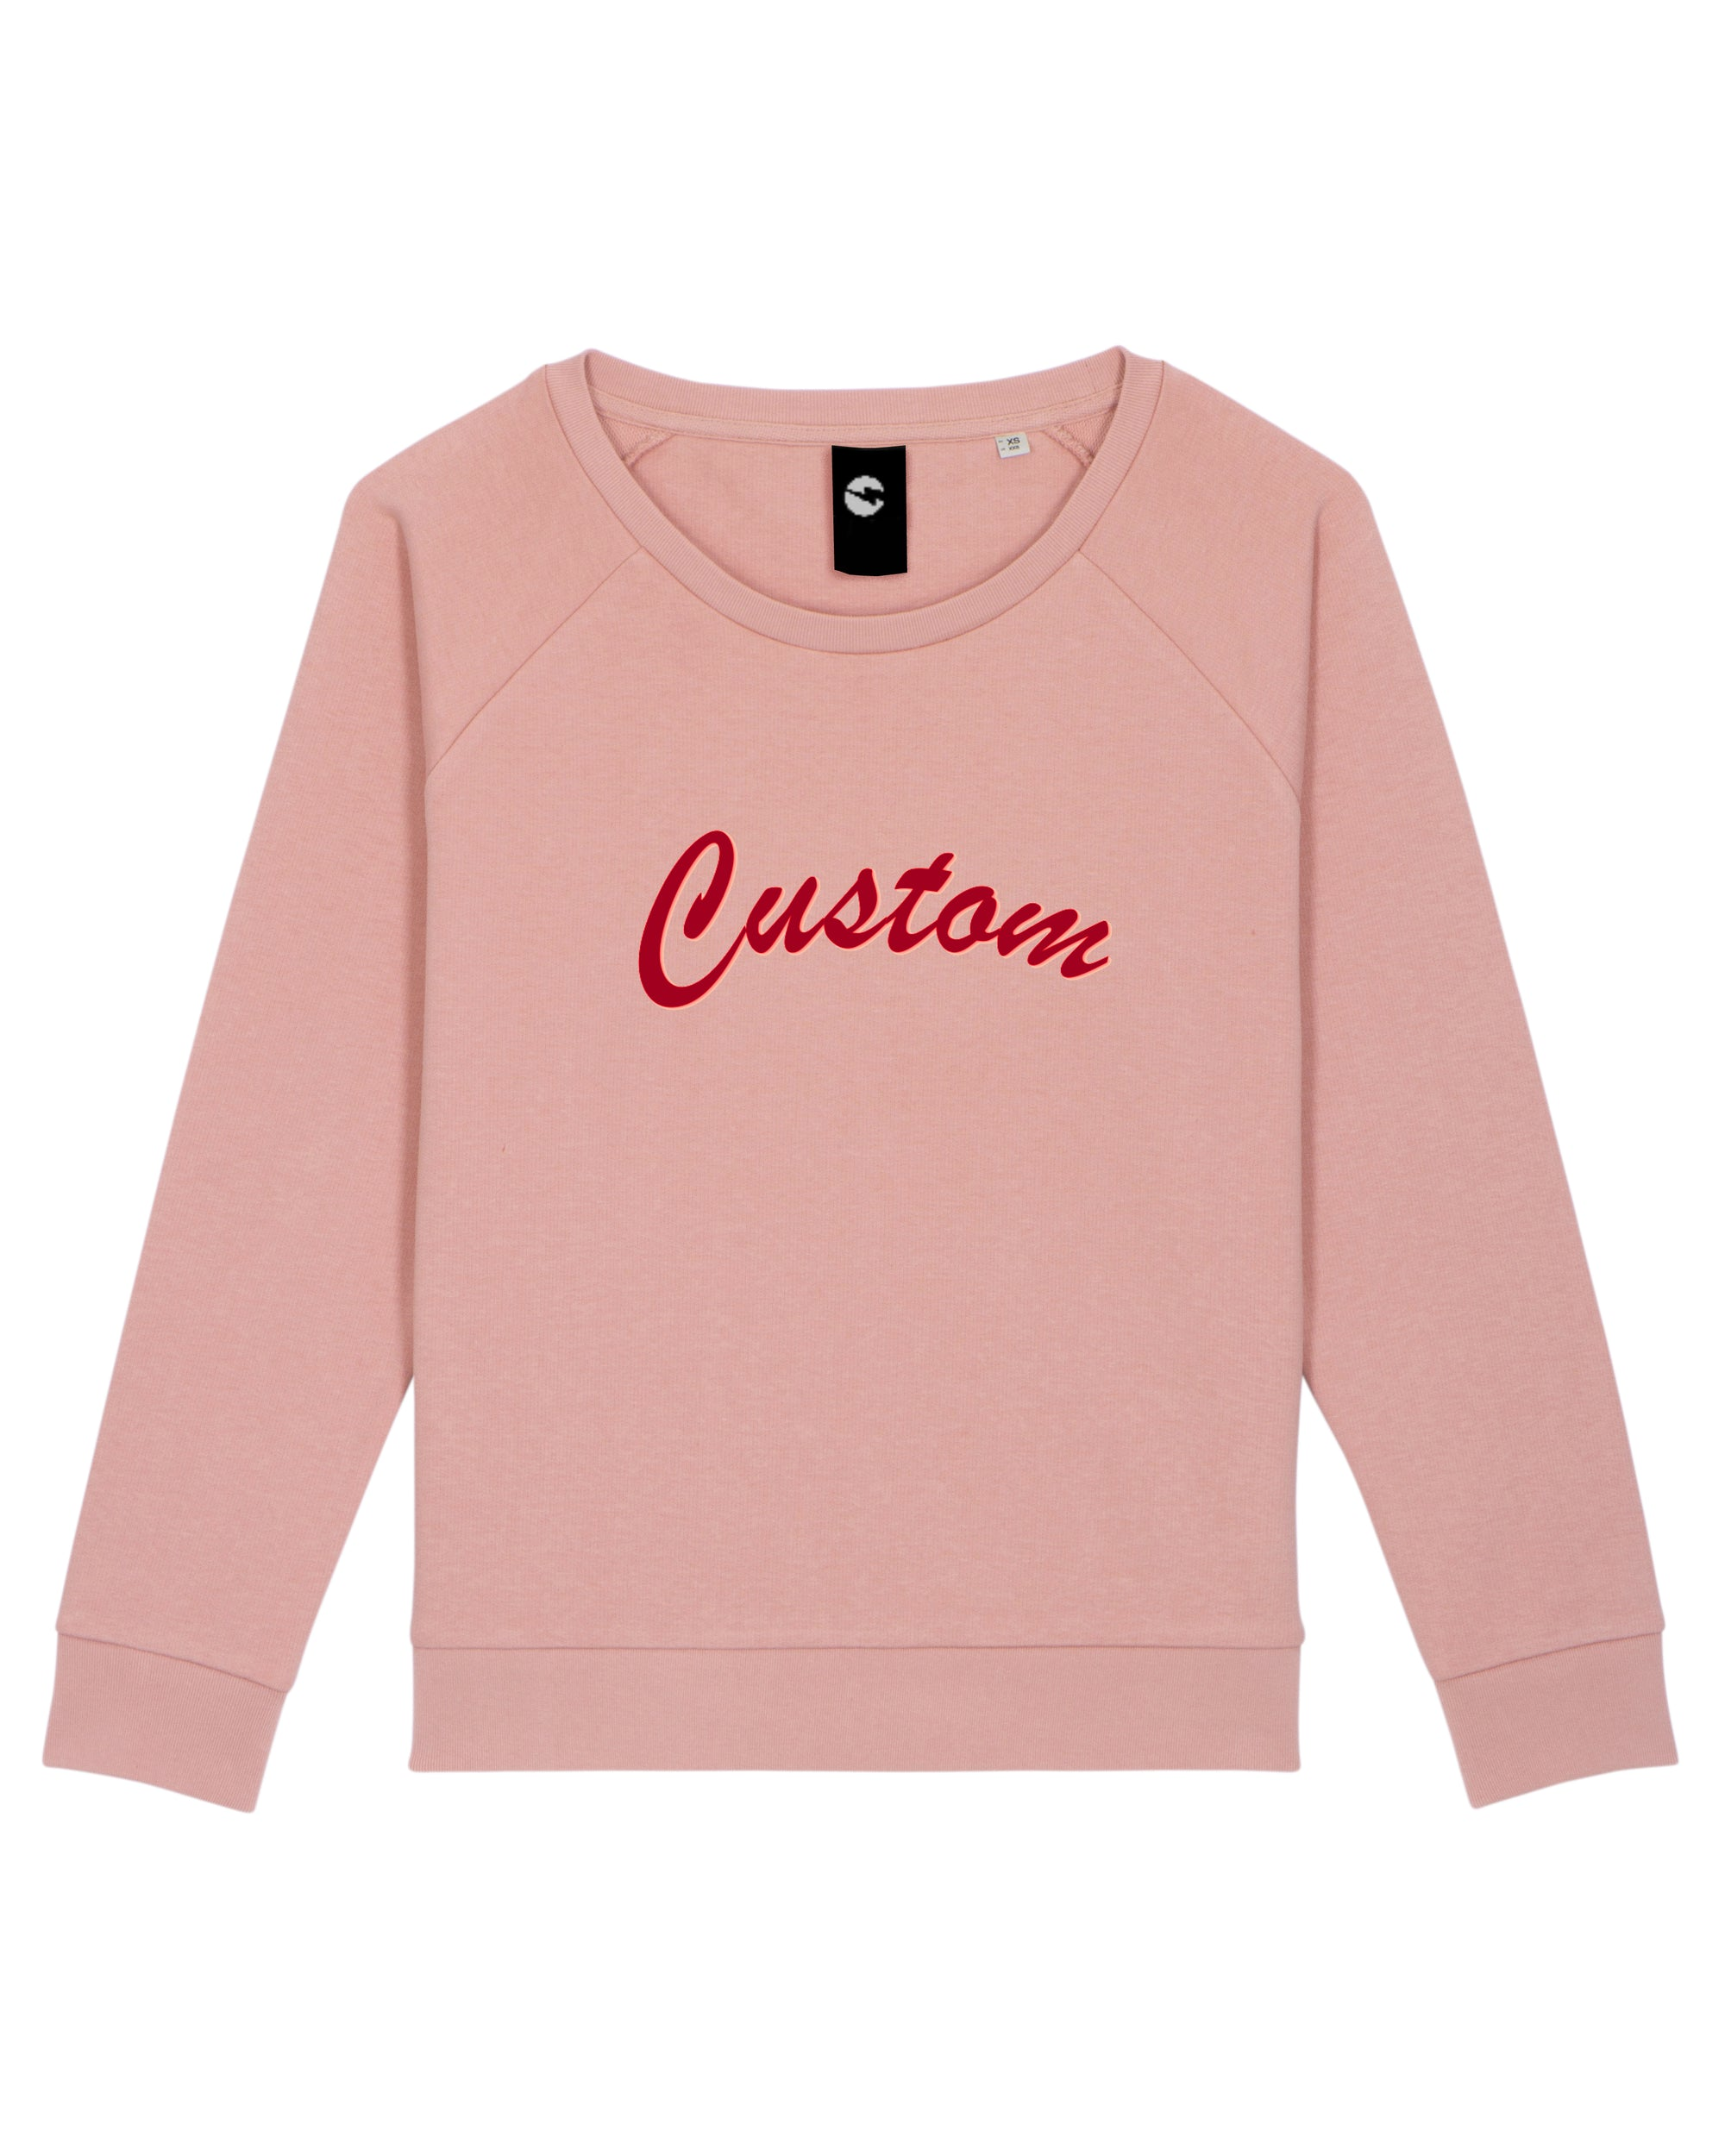 WOMEN'S RELAXED FIT ORGANIC COTTON 'DAZZLER' SWEATSHIRT - customisable centre chest embroidery